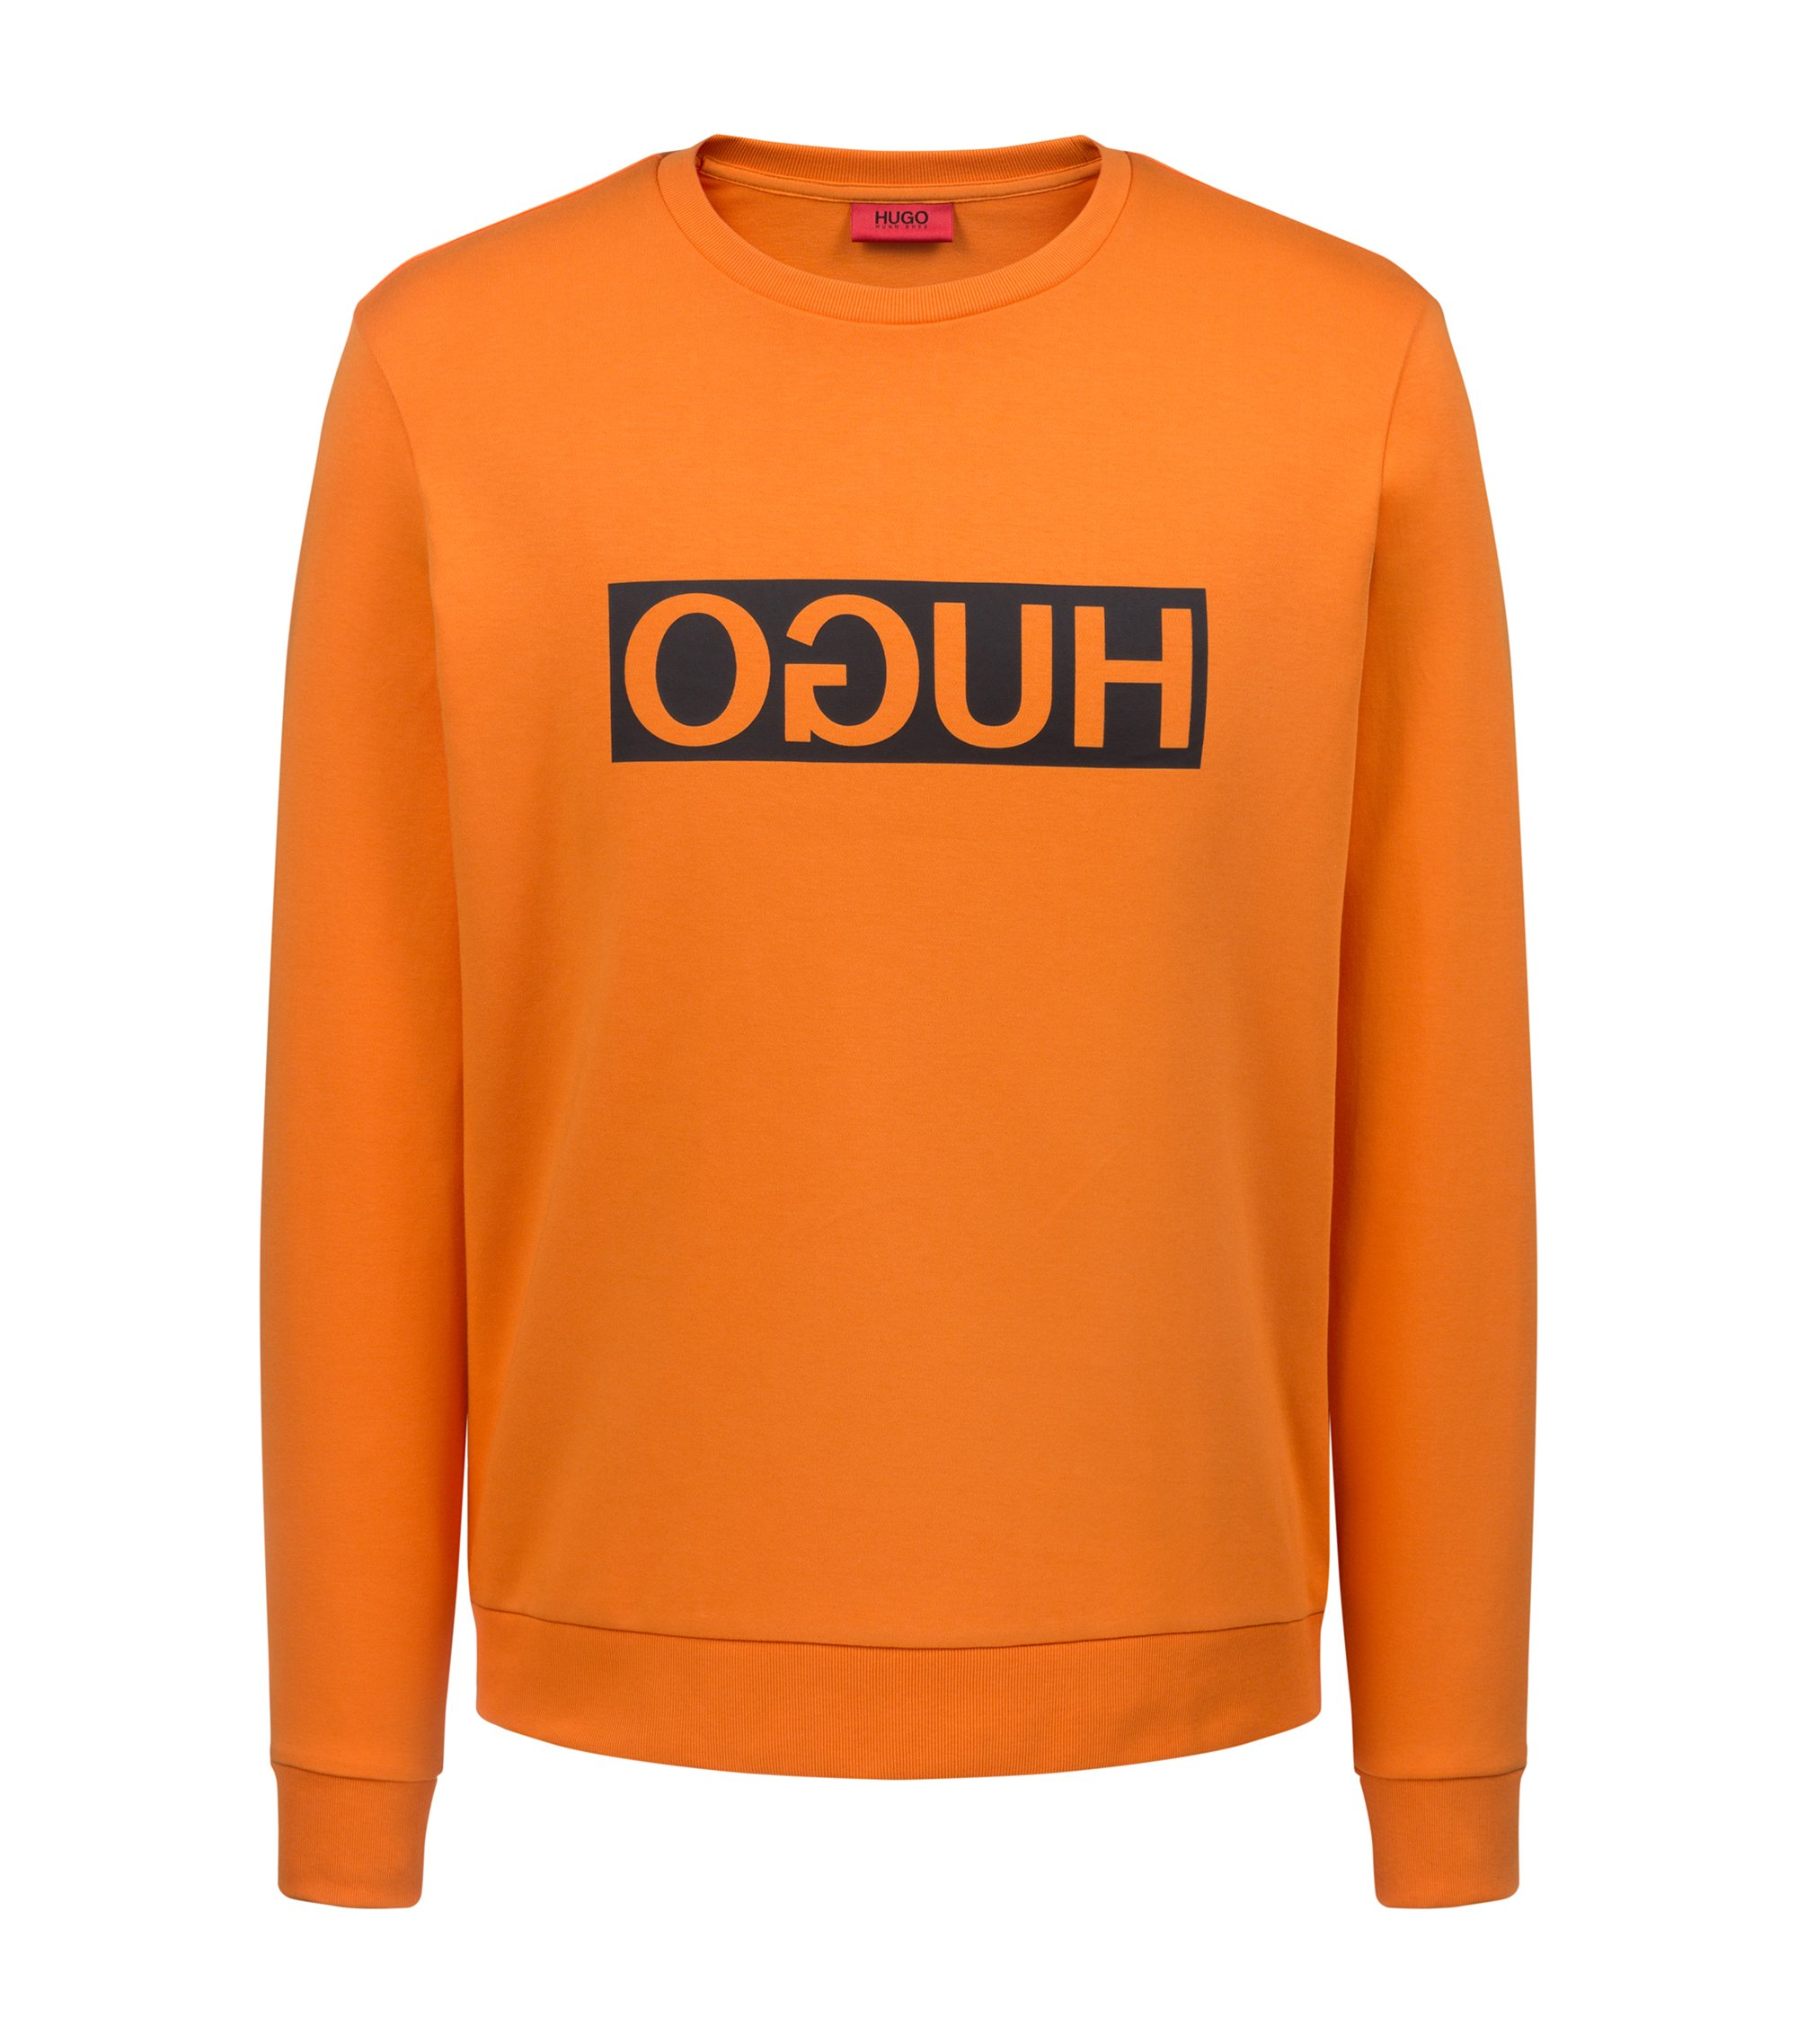 Sweat Regular Fit en coton interlock à logo inversé, Orange